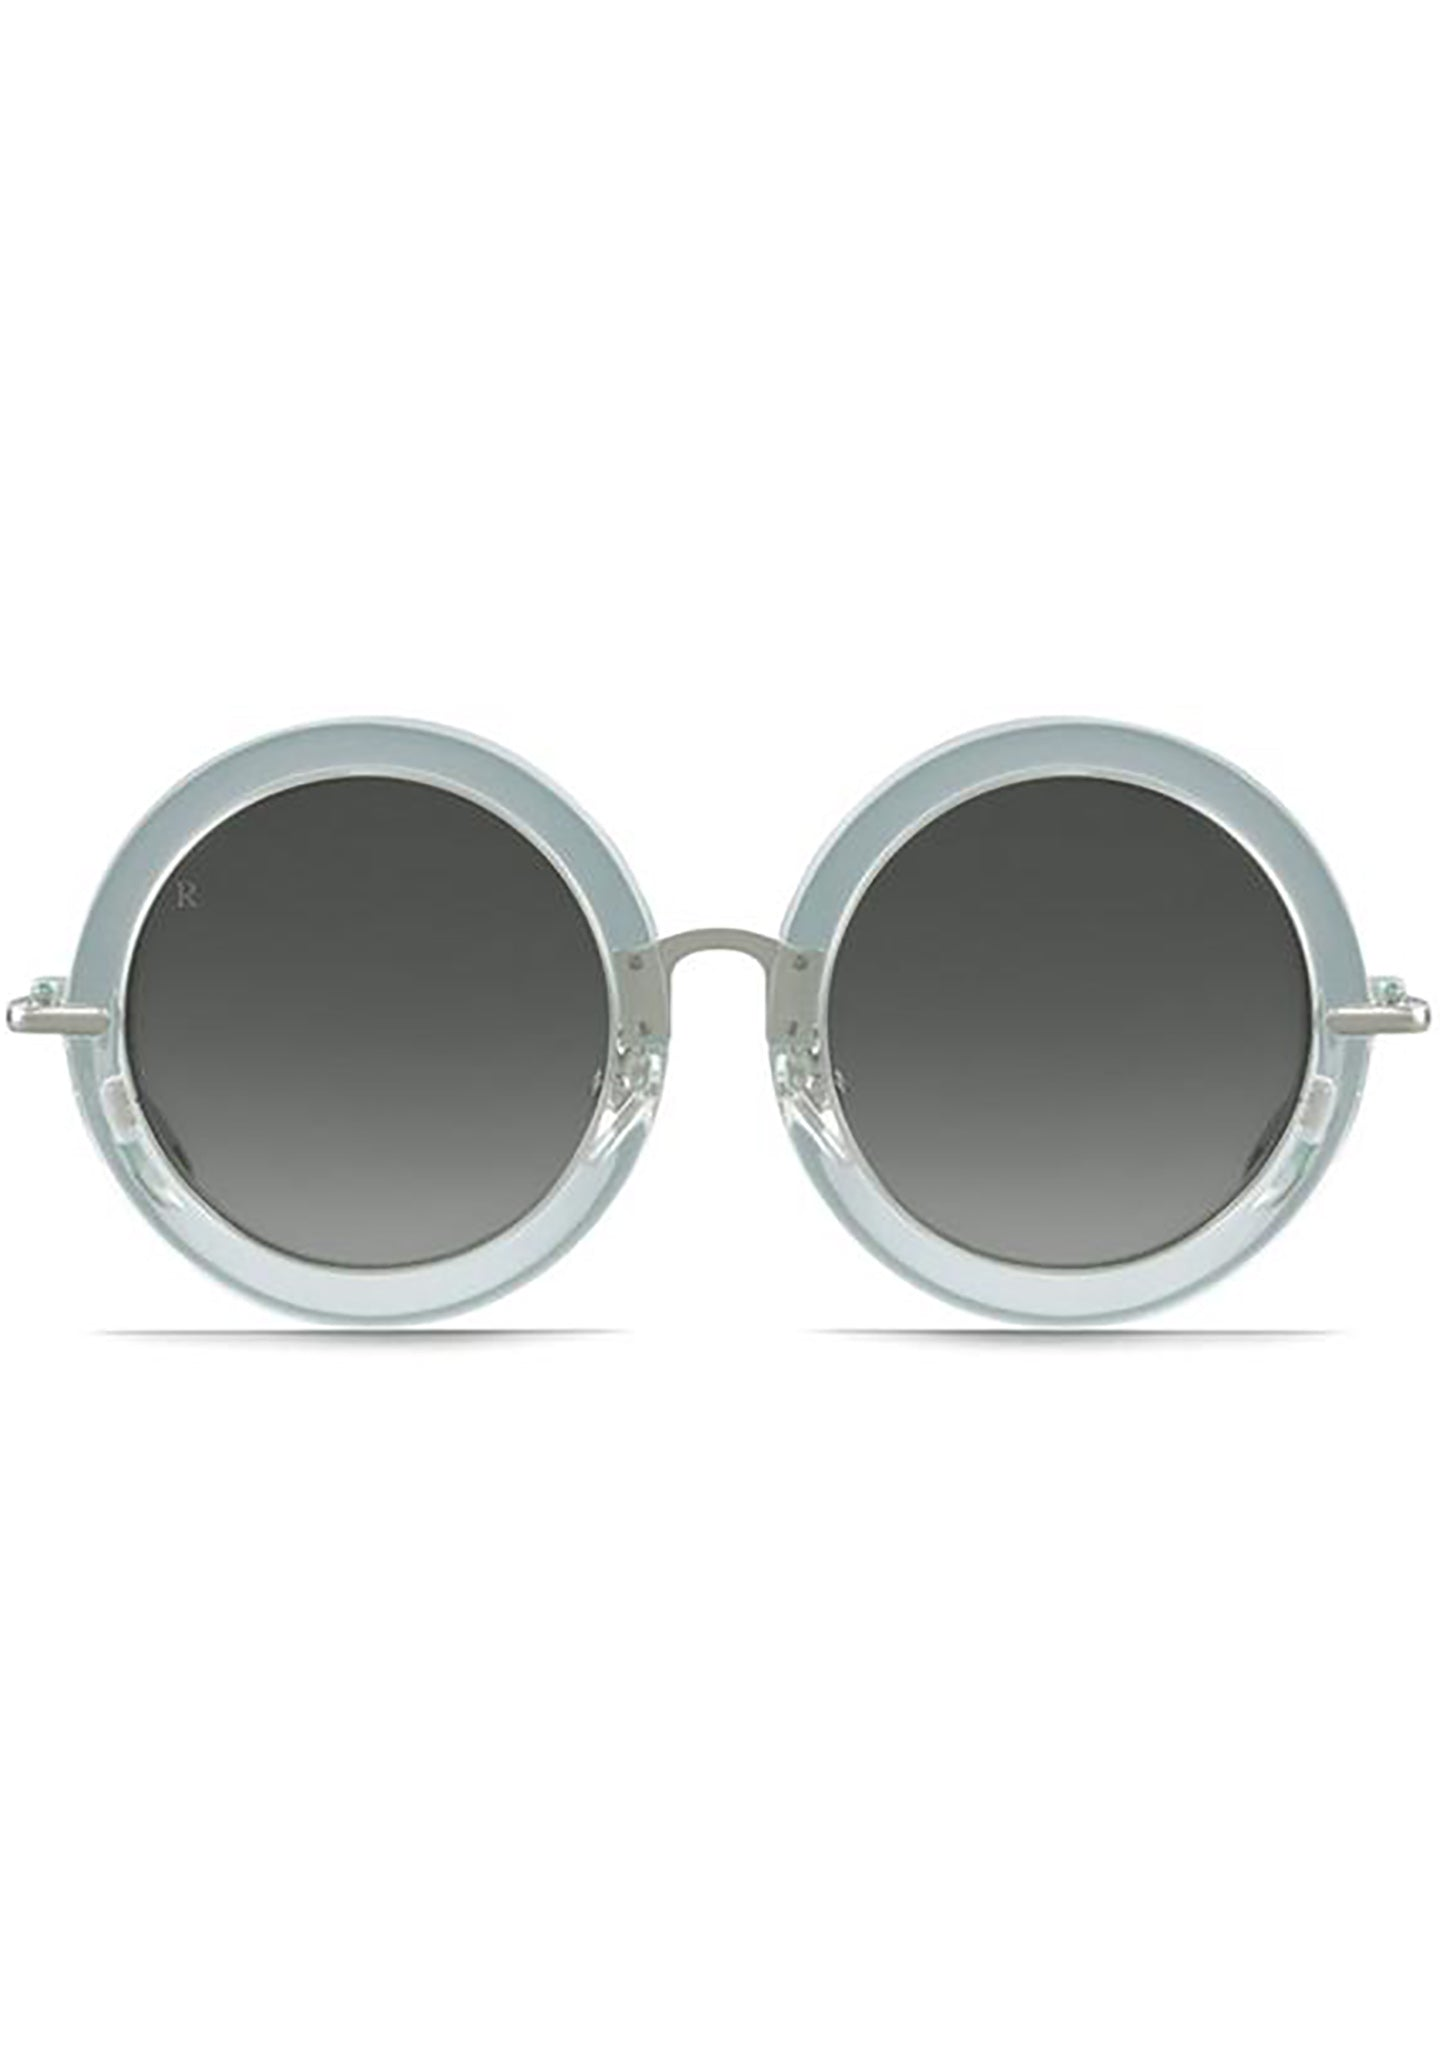 RAEN Optics Nomi Sunglasses in Current